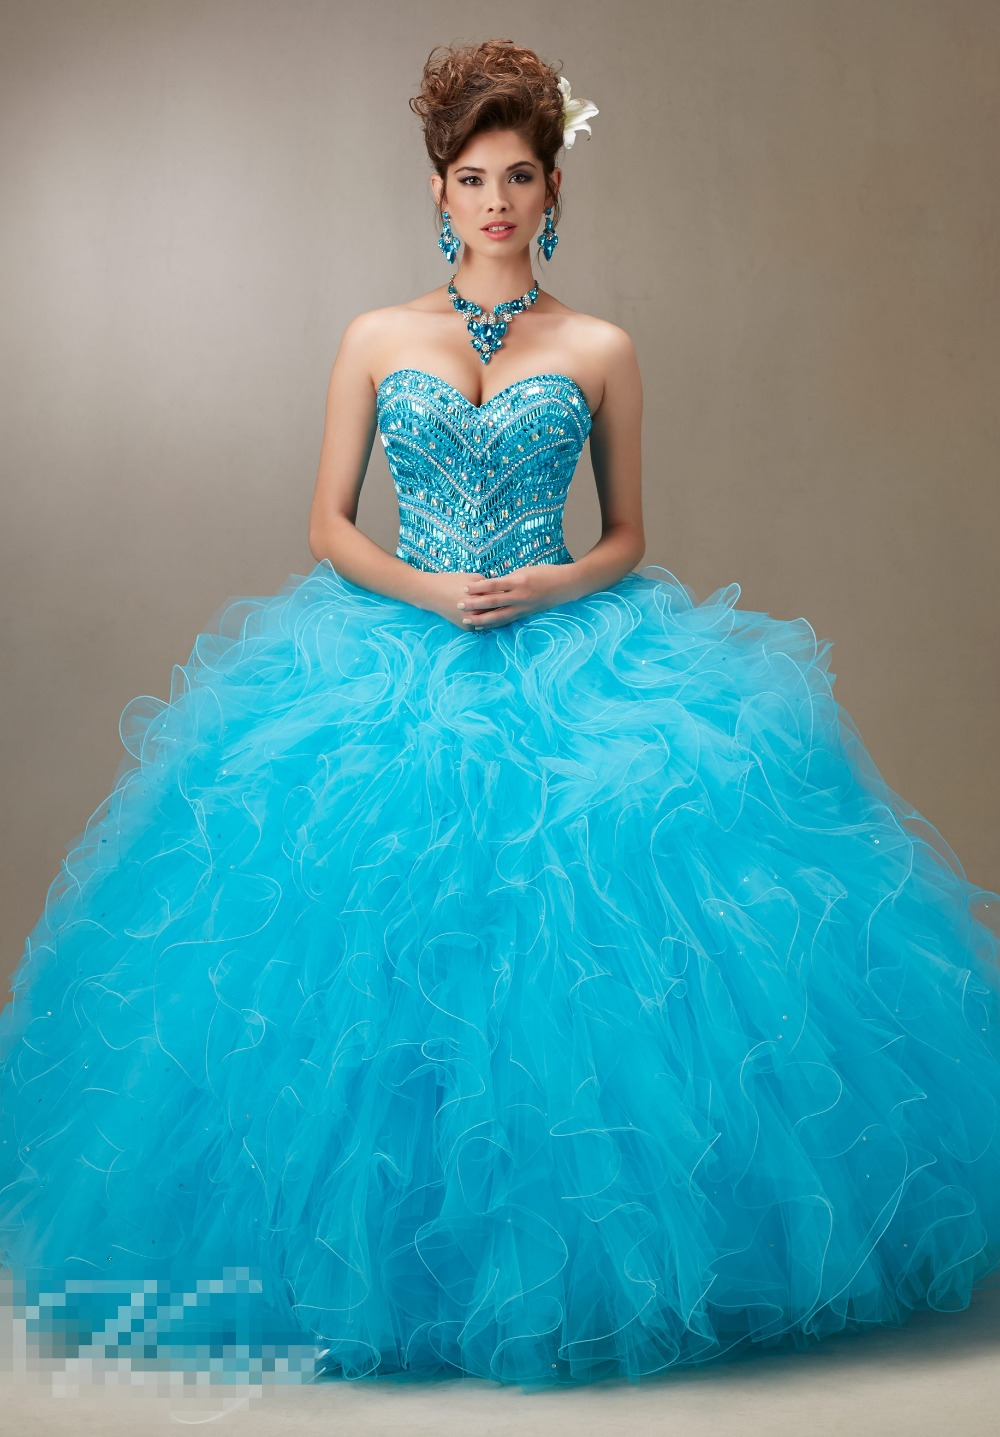 Modest Ruffles Cheap Quinceanera Dresses 2016 Designer Big Crystal ...